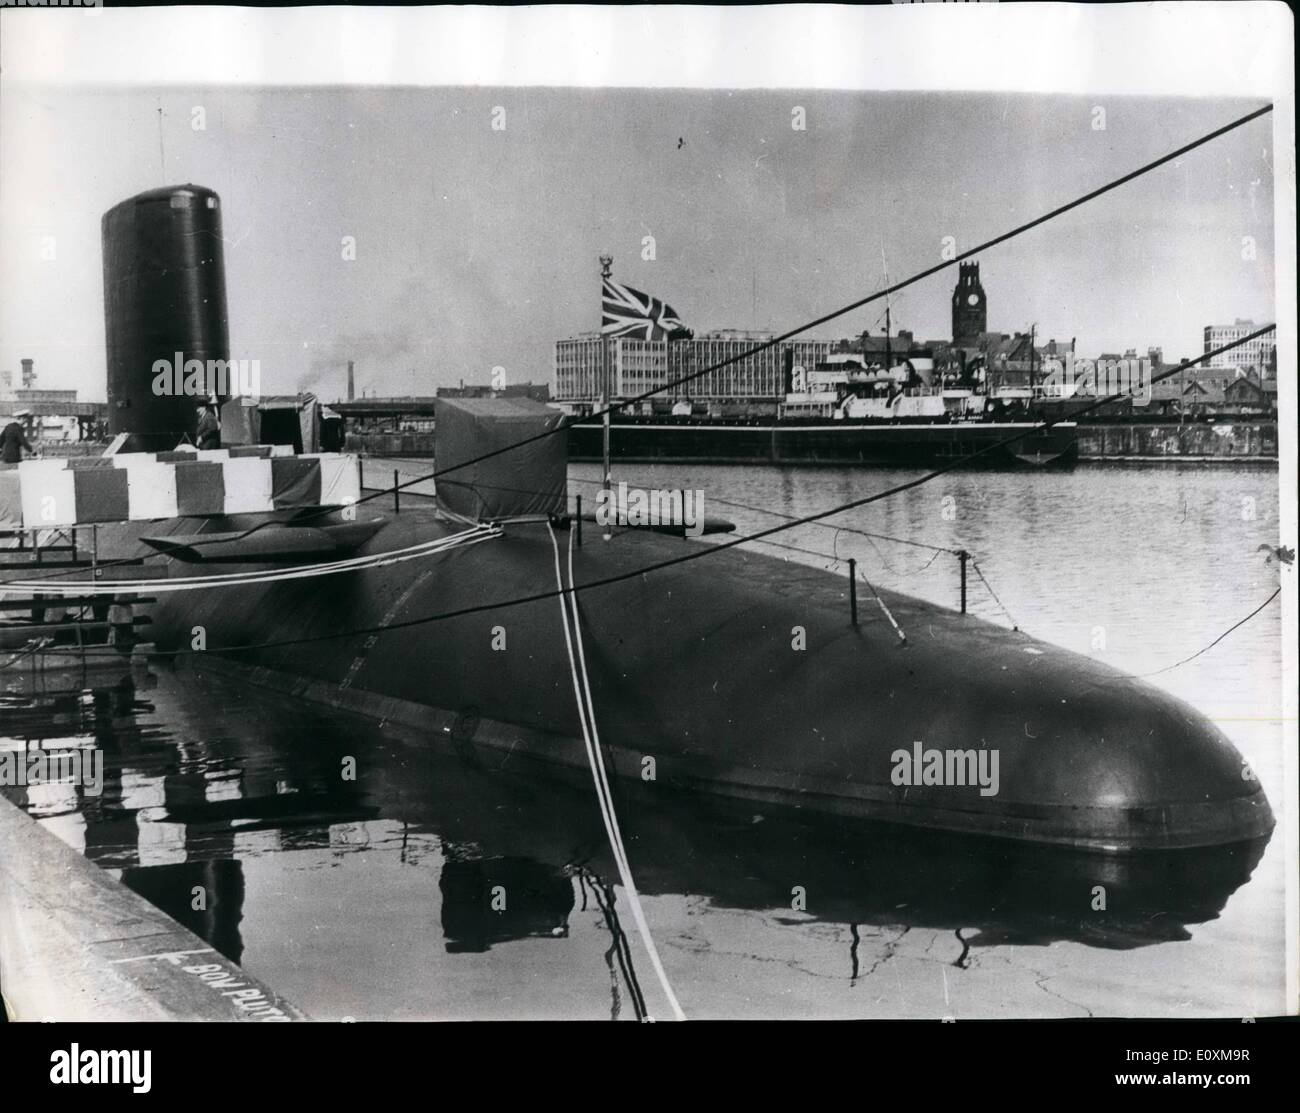 Apr. 04, 1967 - Third British Nuclear Fleet Submarine ''Wars Pite'' Commissioned: Britain's third nuclear Fleet submarine H.M.S. Warspite, was commissioned for service with the Royal Navy at the Barrow-in-Furness Yard of Messrs. Vickers Limited (Shipbuilding Group), yesterday. The guest of honour at the ceremony was Mrs. Wilson, wife of the Prime Minister. Mrs. Wilson named the submarine a the launch in September 1965. The Warspite, which is of all-British construction, has a length of 285-feet - Stock Image